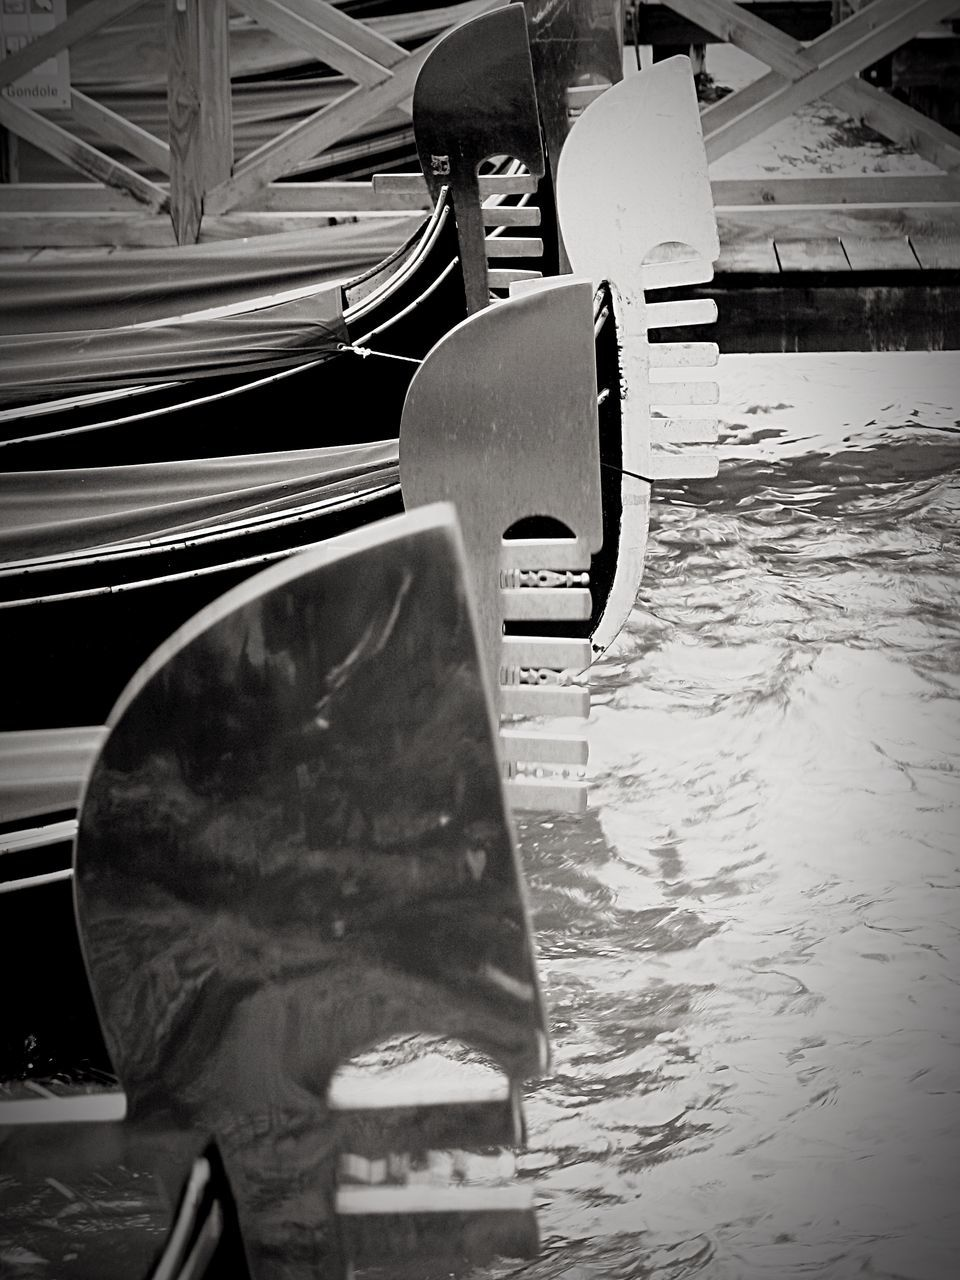 no people, outdoors, transportation, day, close-up, nautical vessel